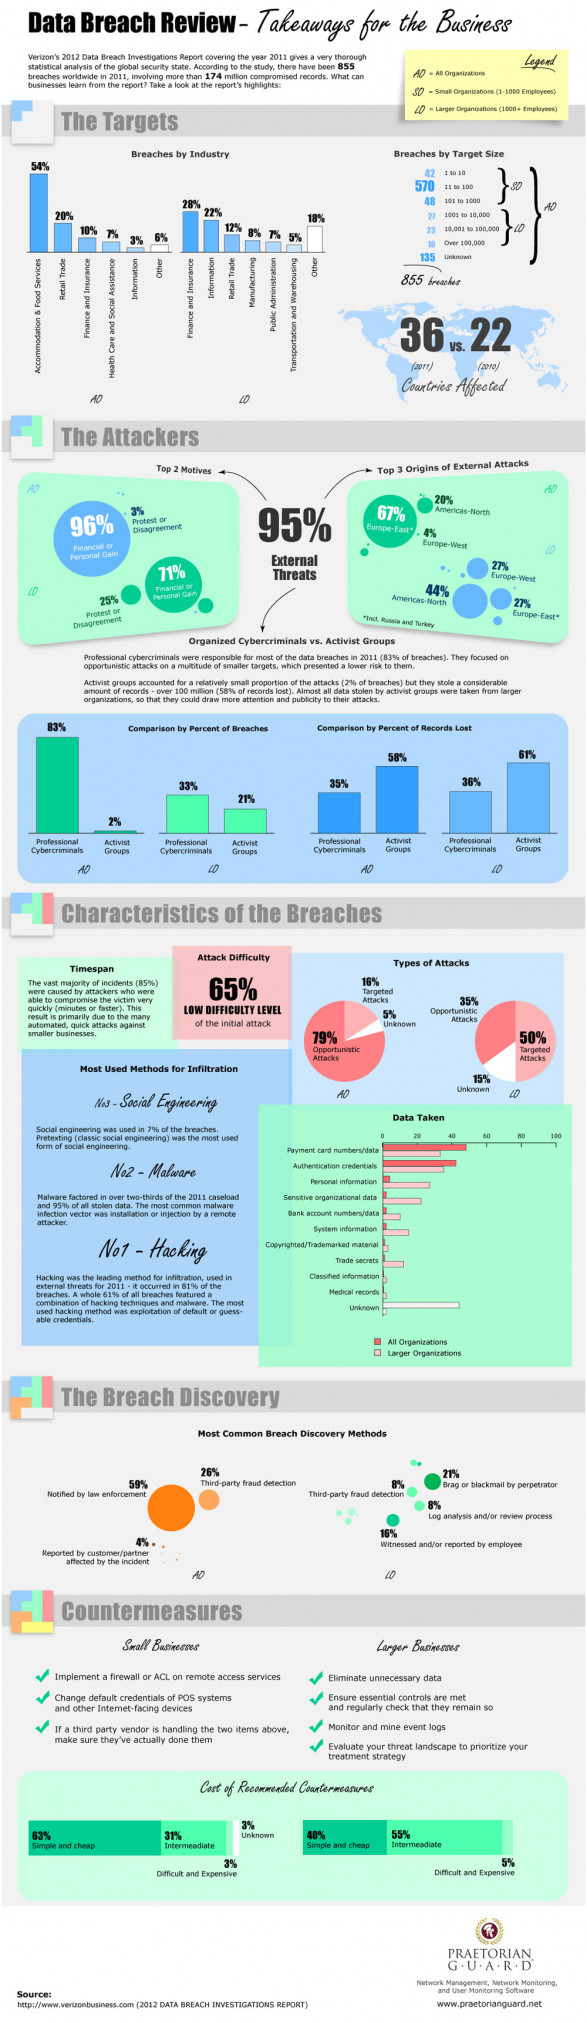 Data Breach Review - Takeaways for the Business